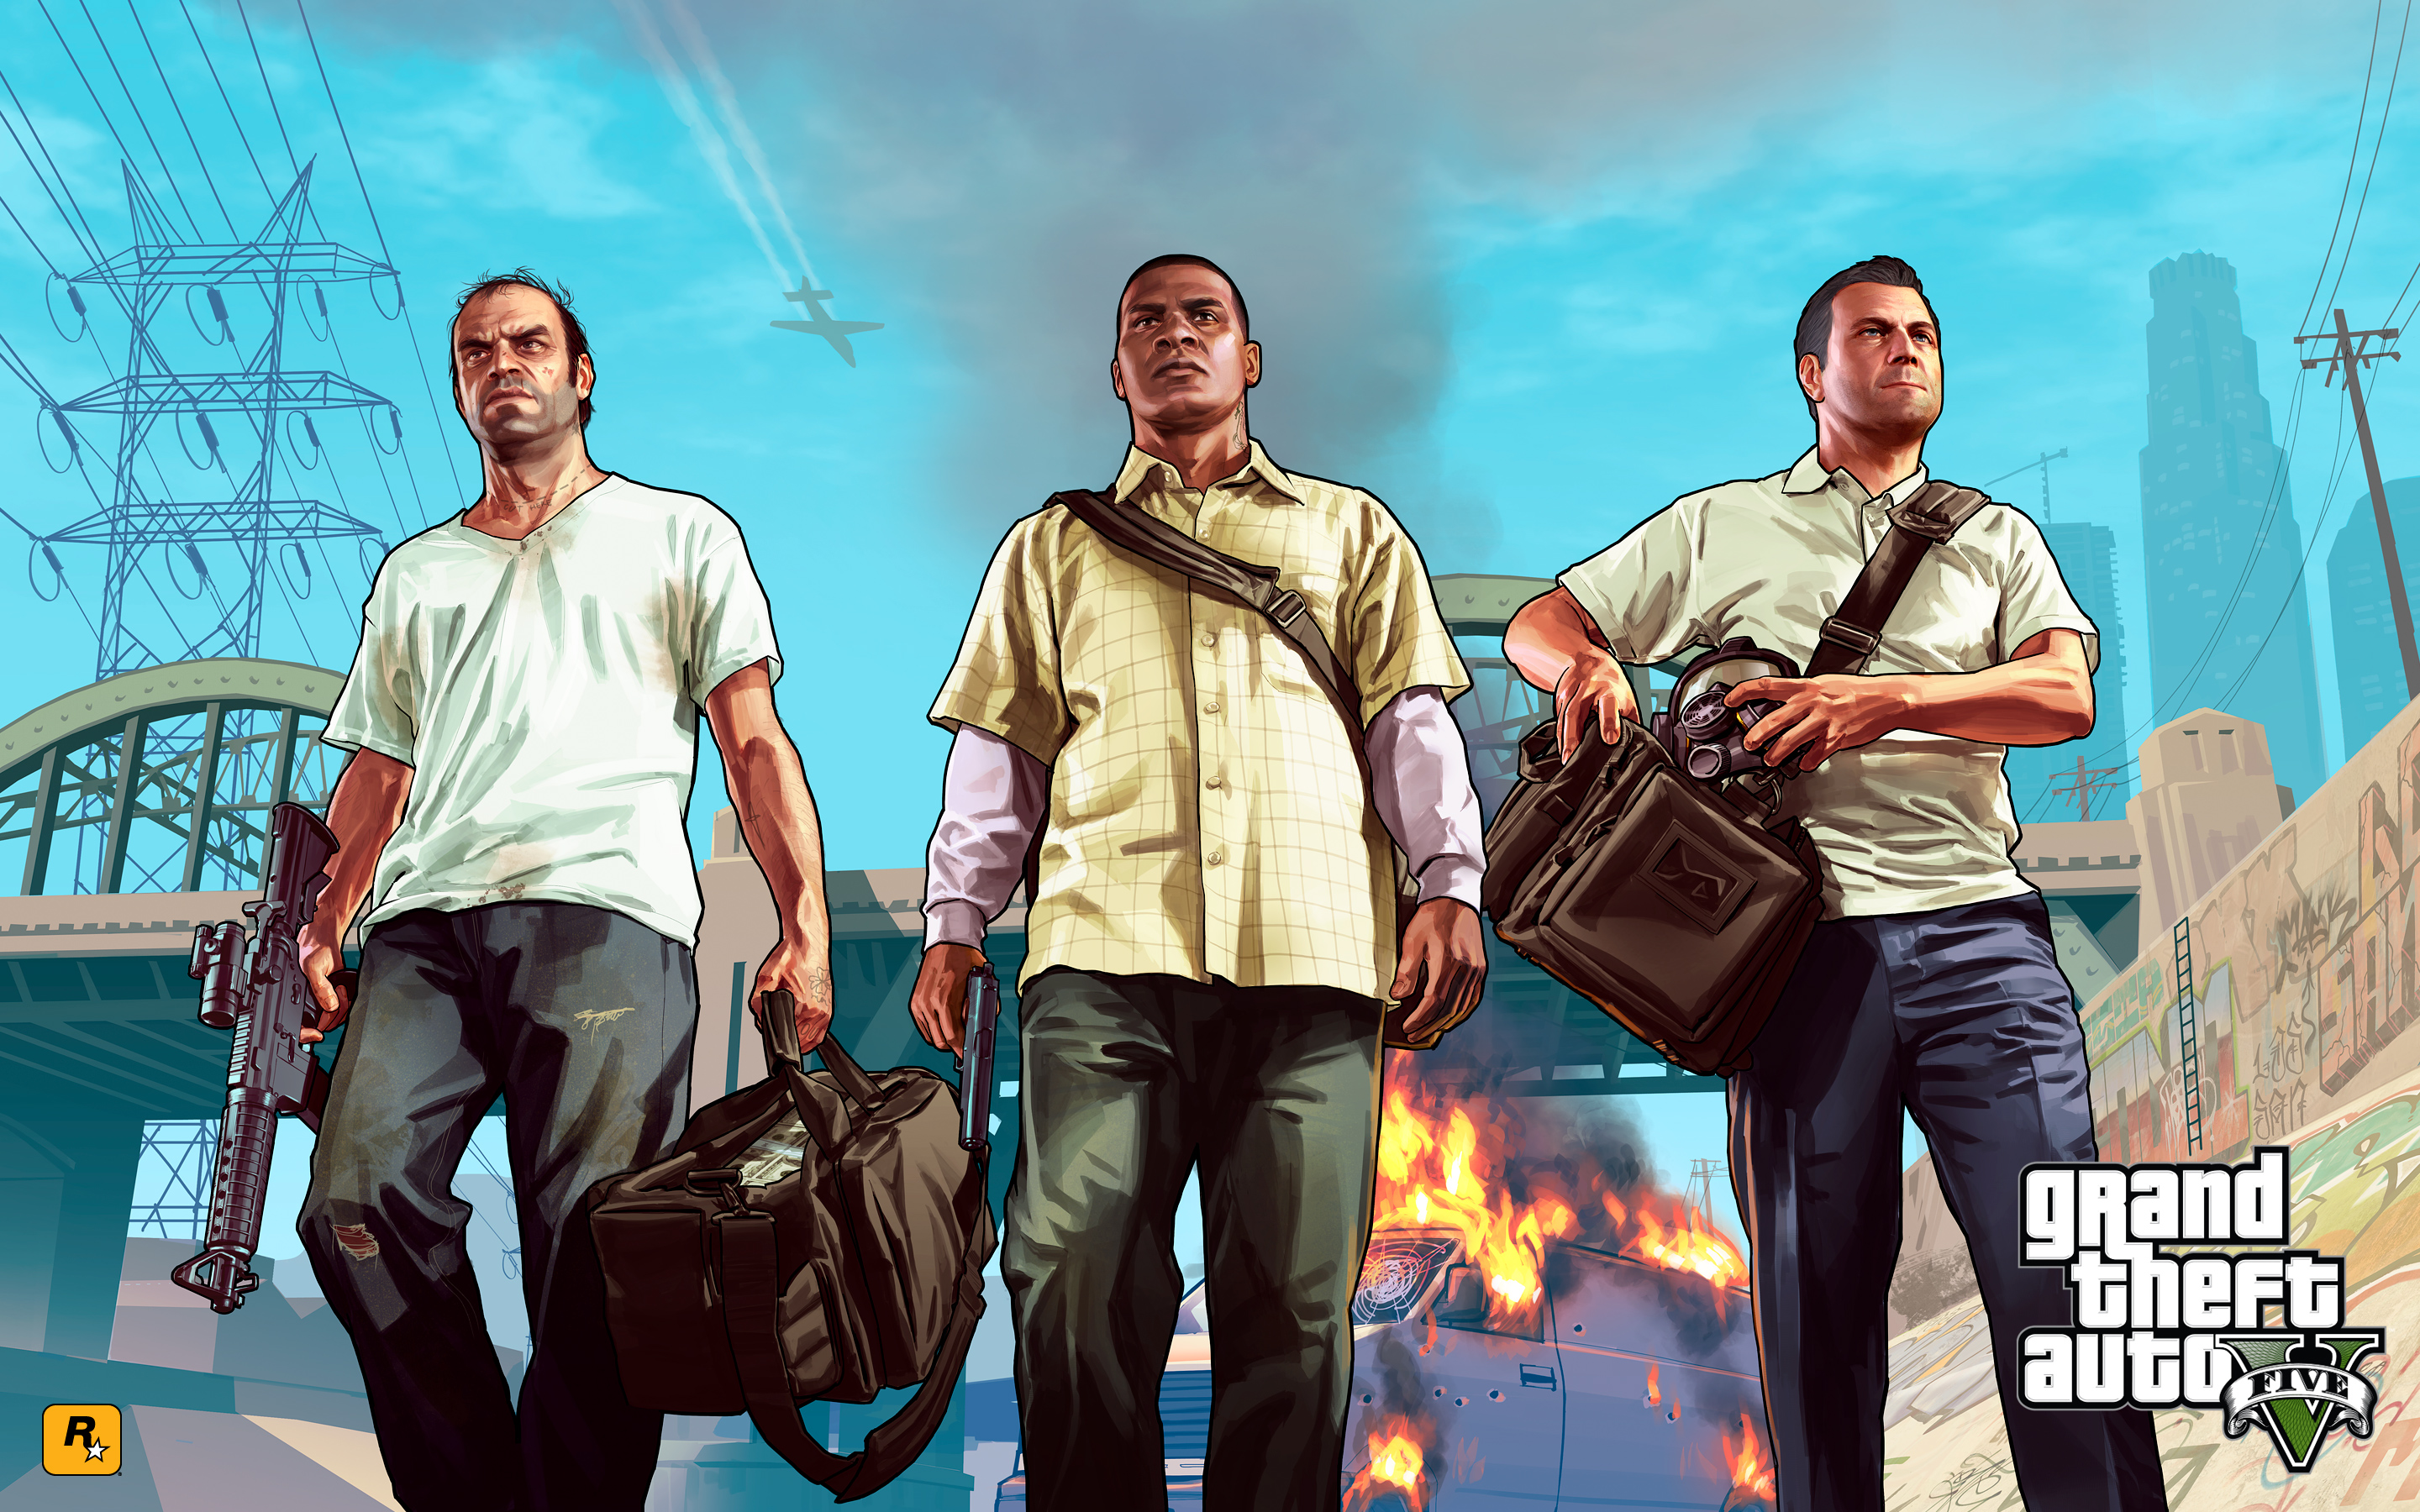 Get it in various sizes from Rockstar Downloads here. Of course this means more Social Club avatars too. Enjoy and look for plenty more GTA 5 information ...